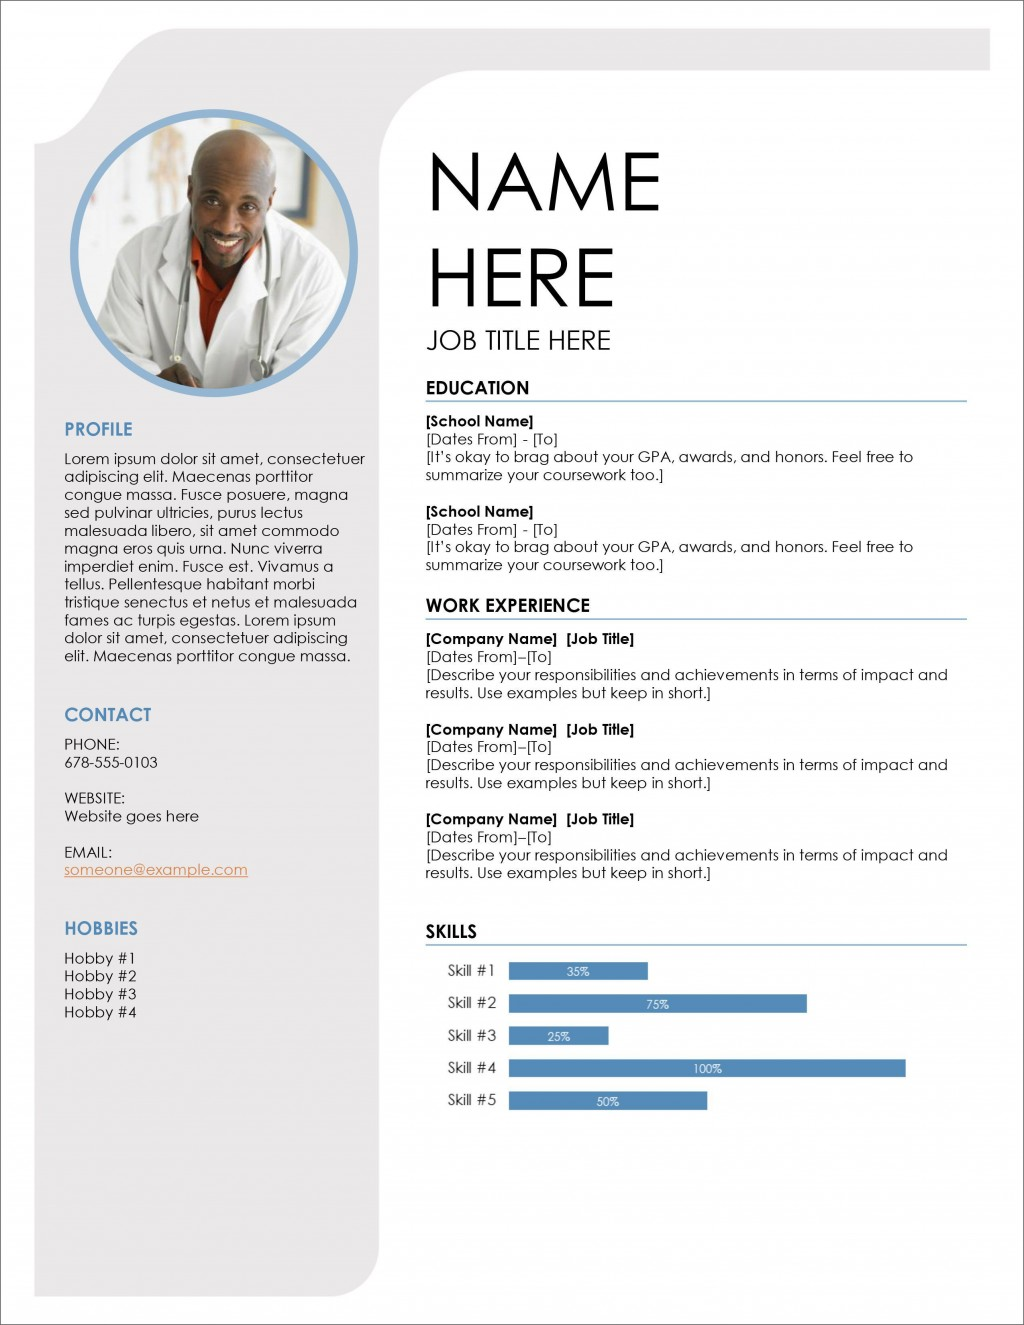 005 Incredible Download Free Resume Template Word 2018 Inspiration Large